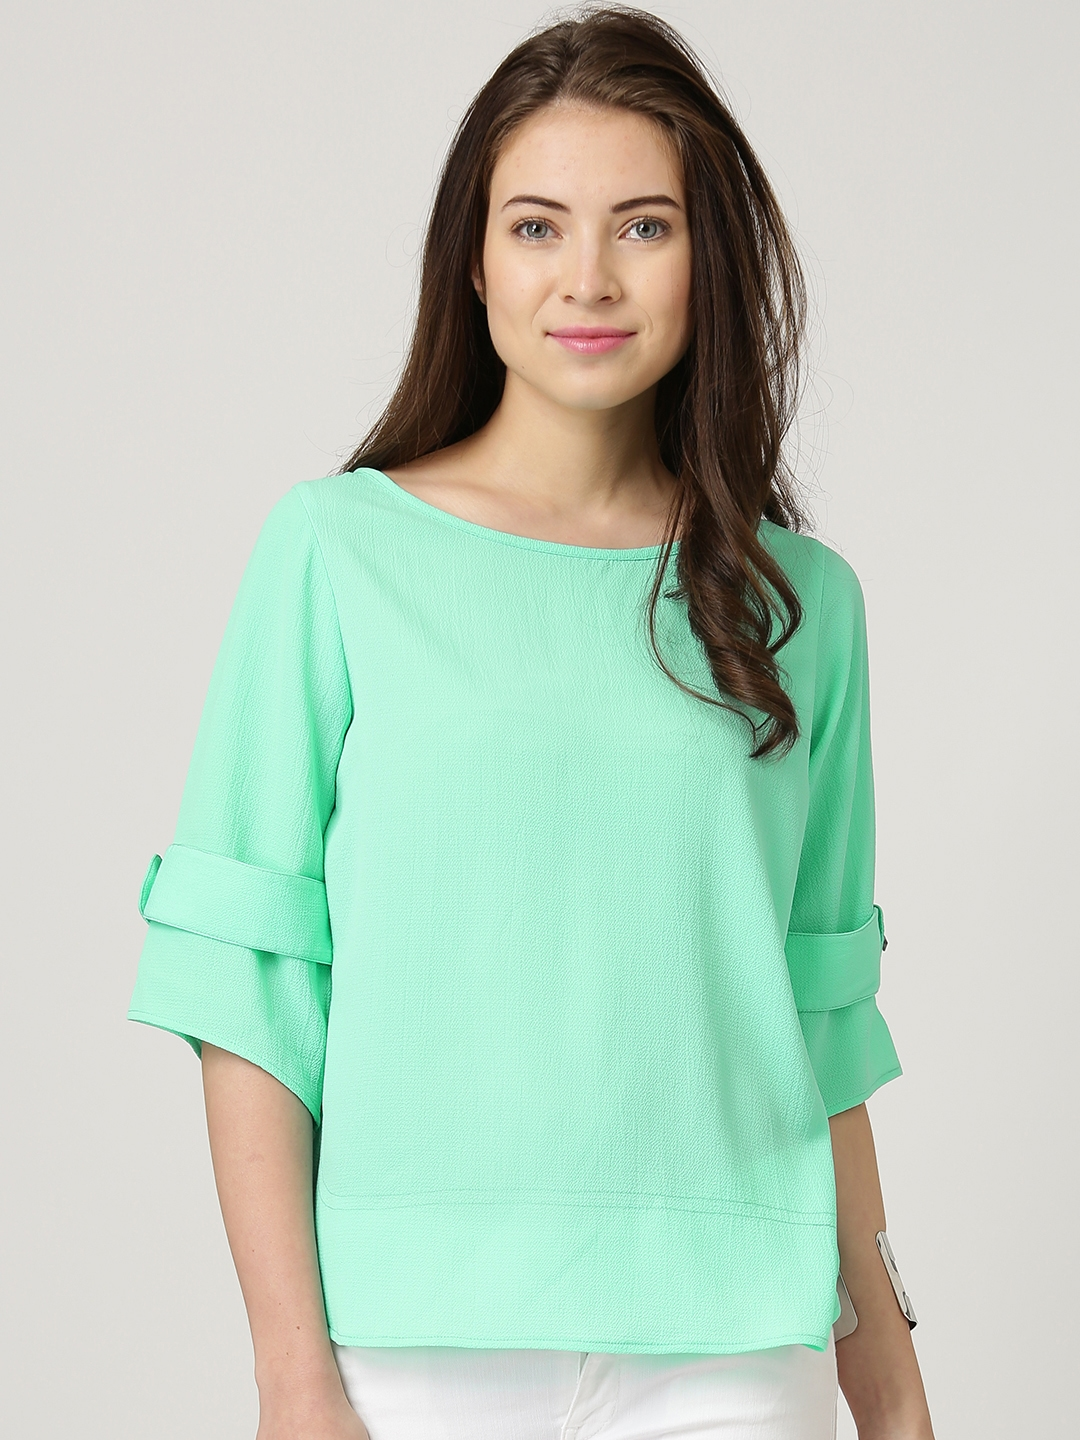 eec77e34590 Buy Marie Claire Mint Green Textured Top - Tops for Women 1382673 ...